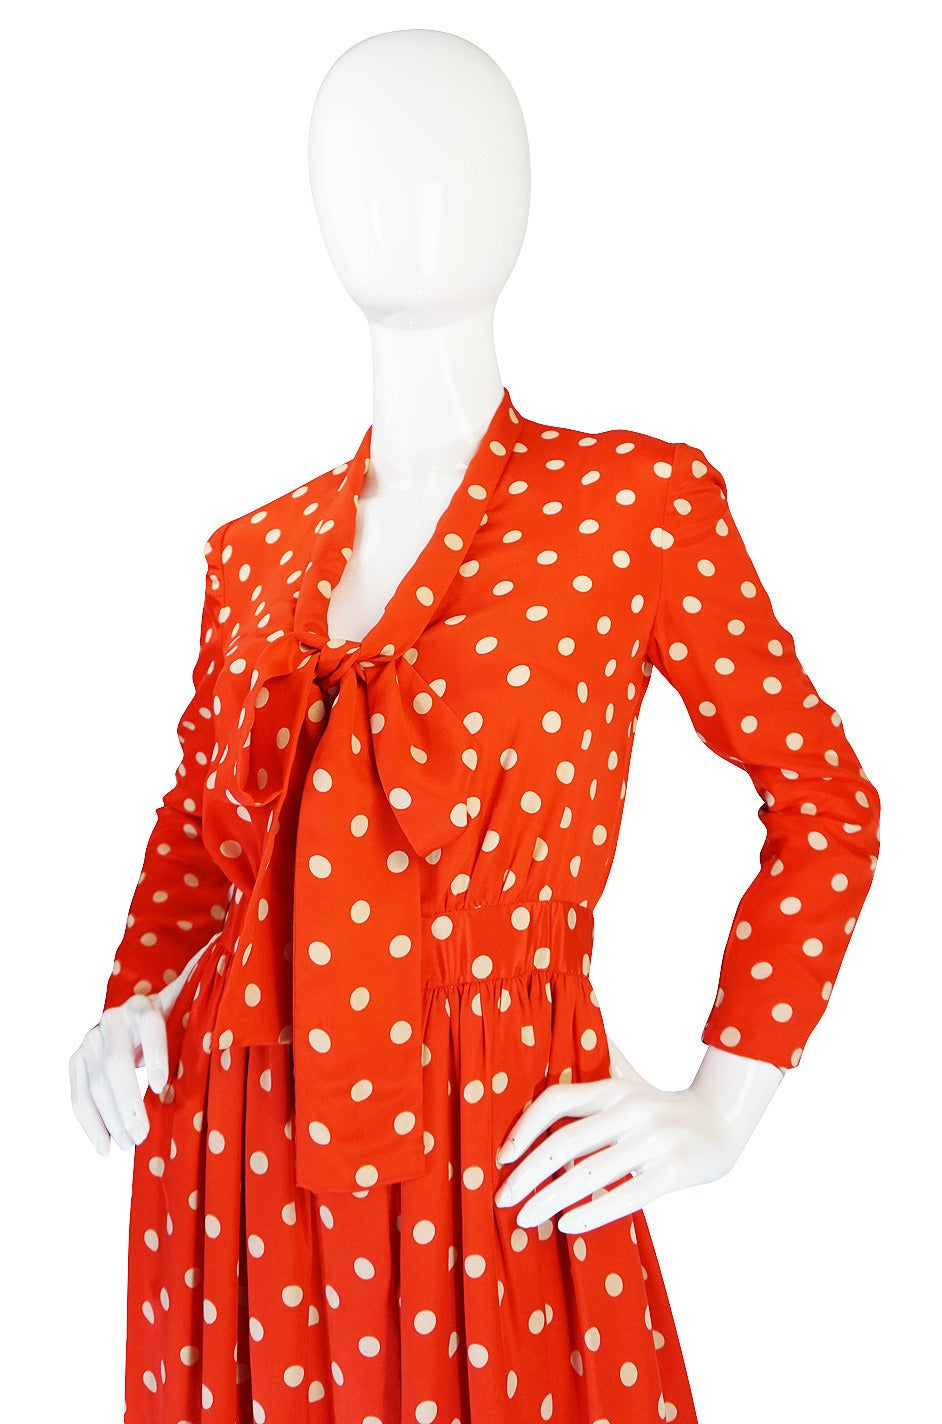 c1972-76 Norell Tassell Dotted Red Maxi Dress For Sale 2